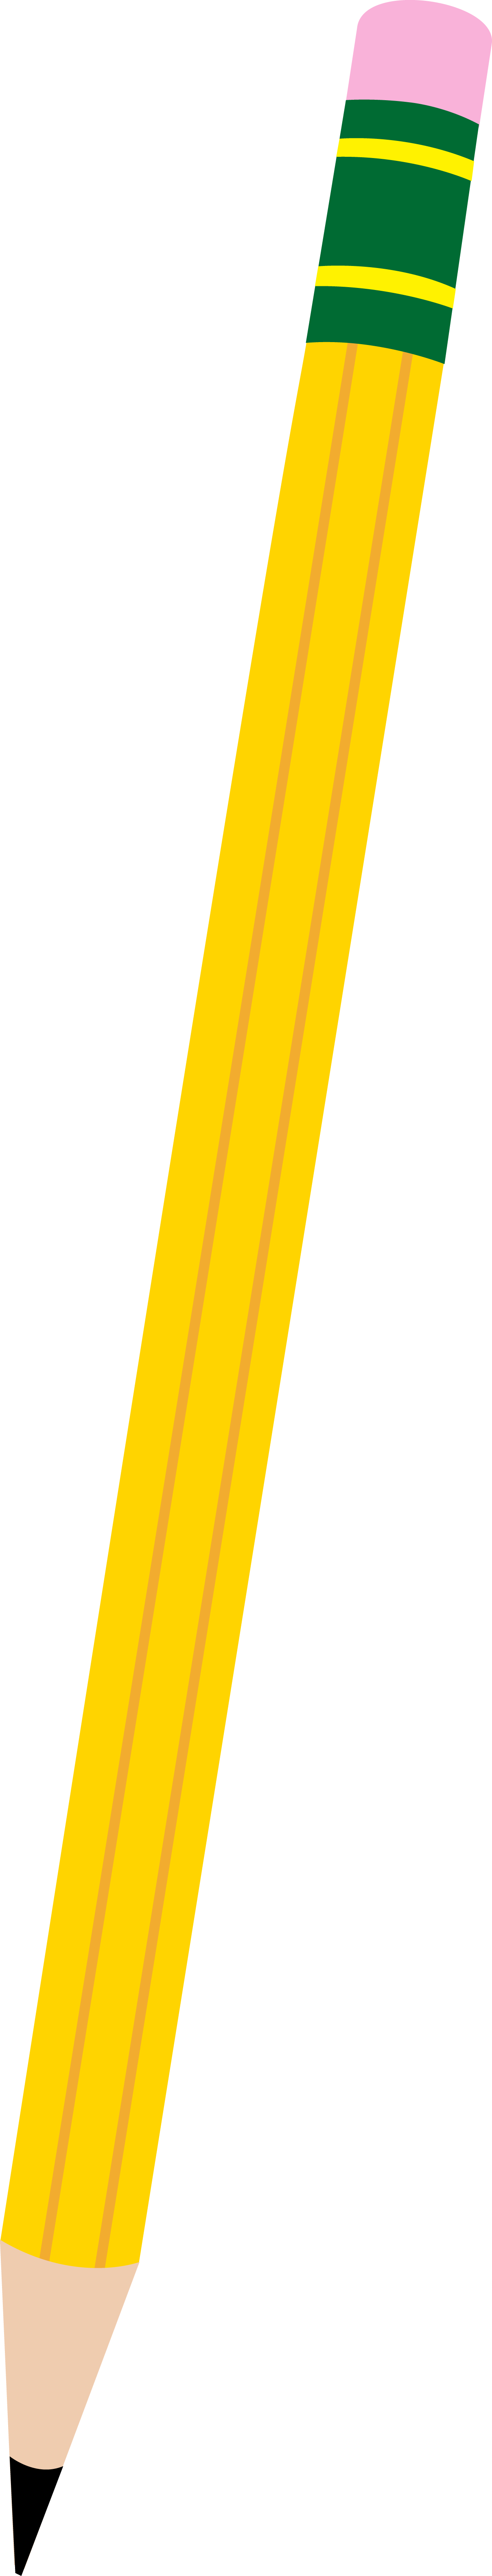 Simple Yellow Pencil.